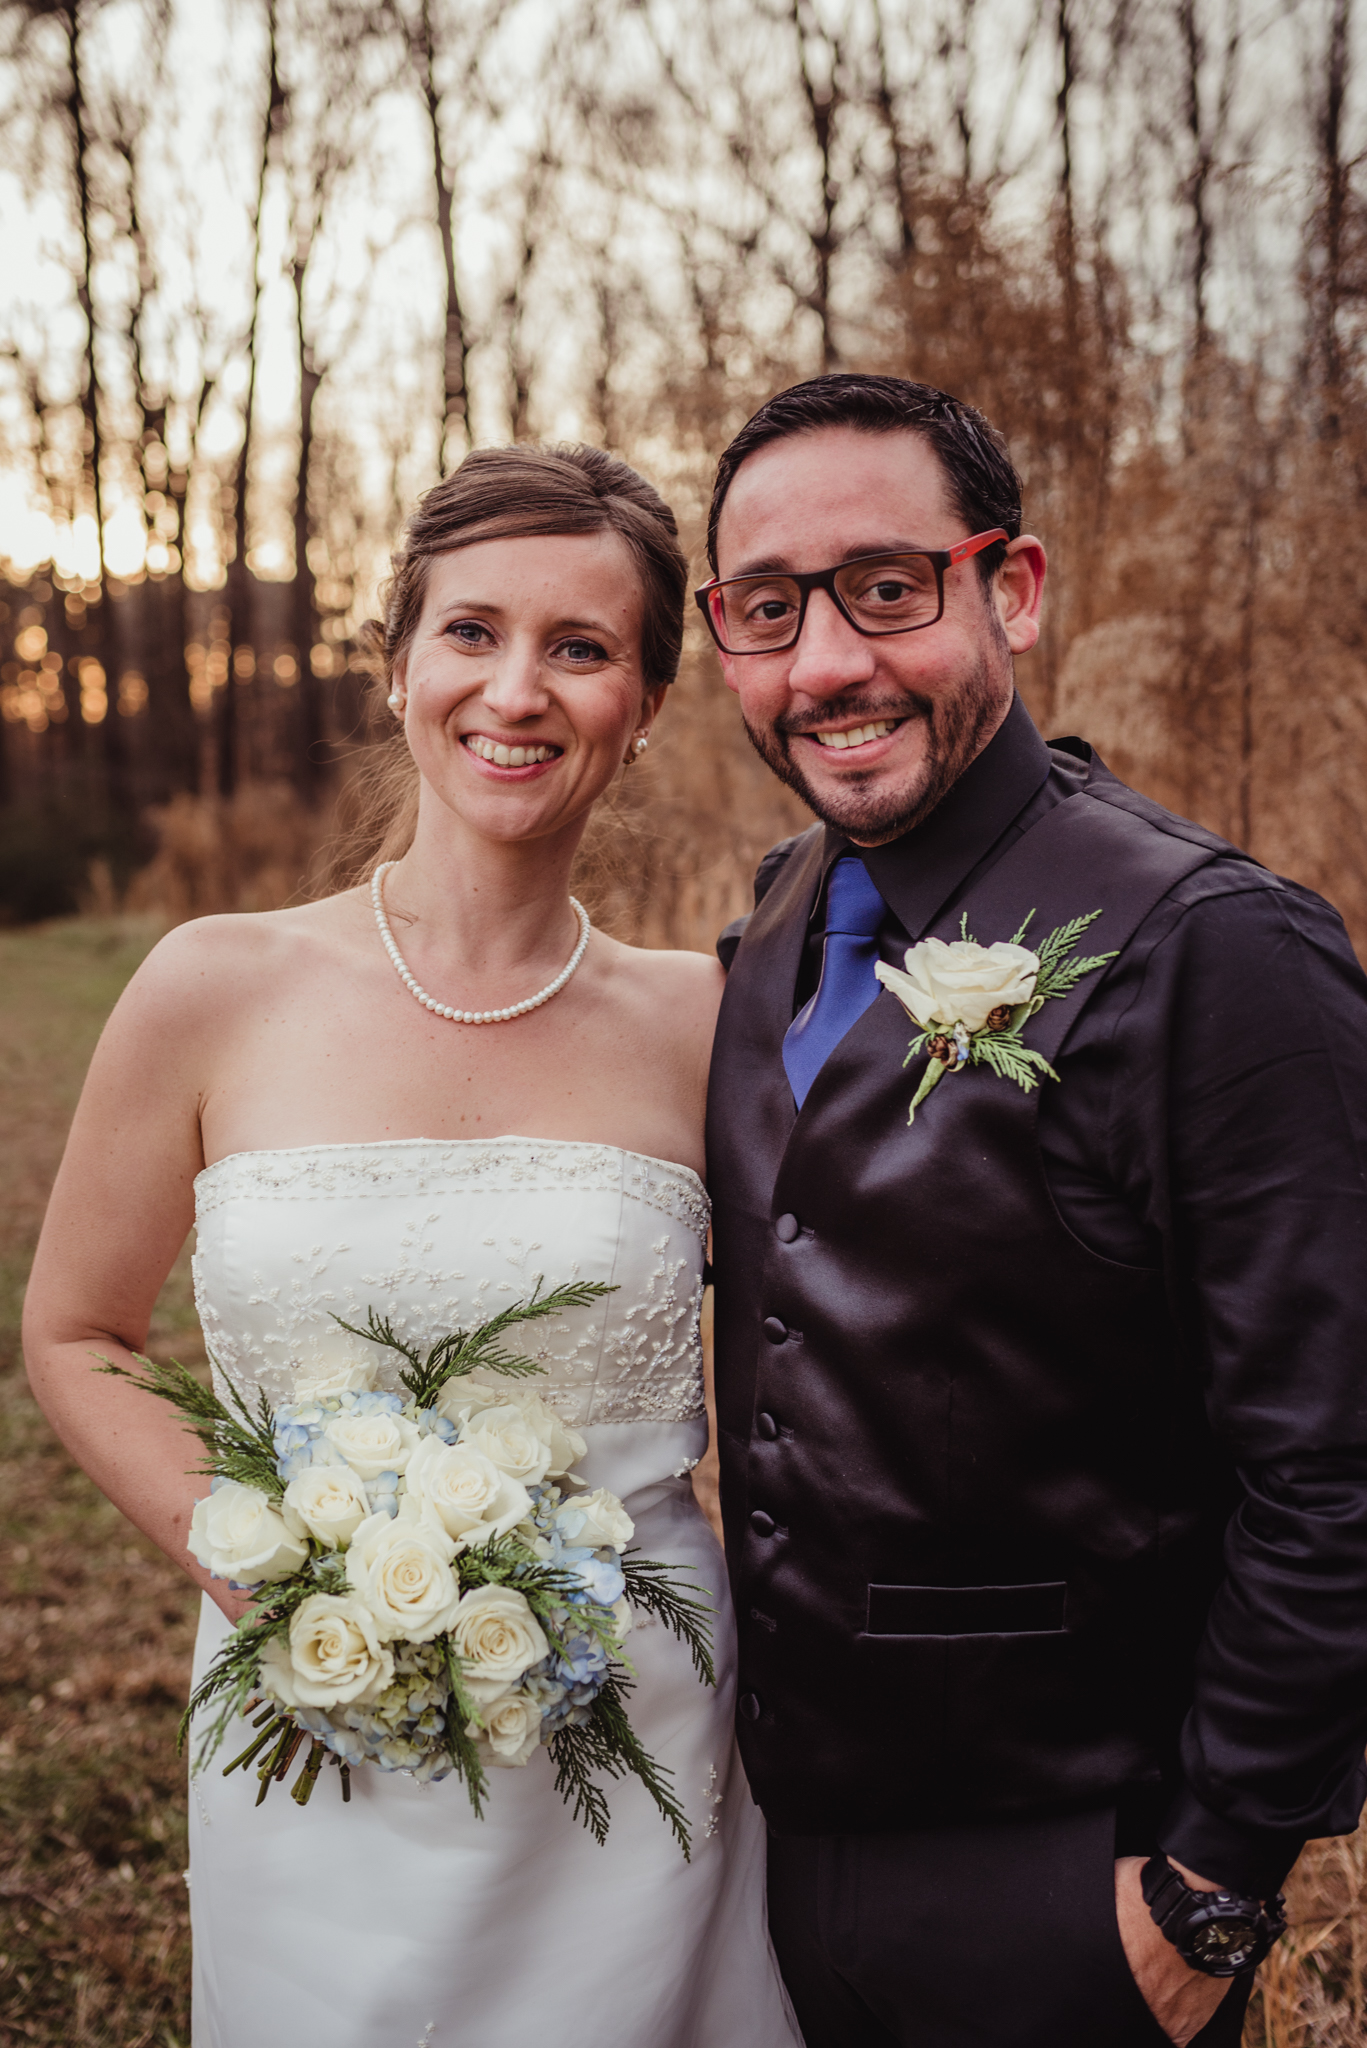 the-bride-and-groom-pose-for-pictures-at-a-local-park-here-in-raleigh.jpg